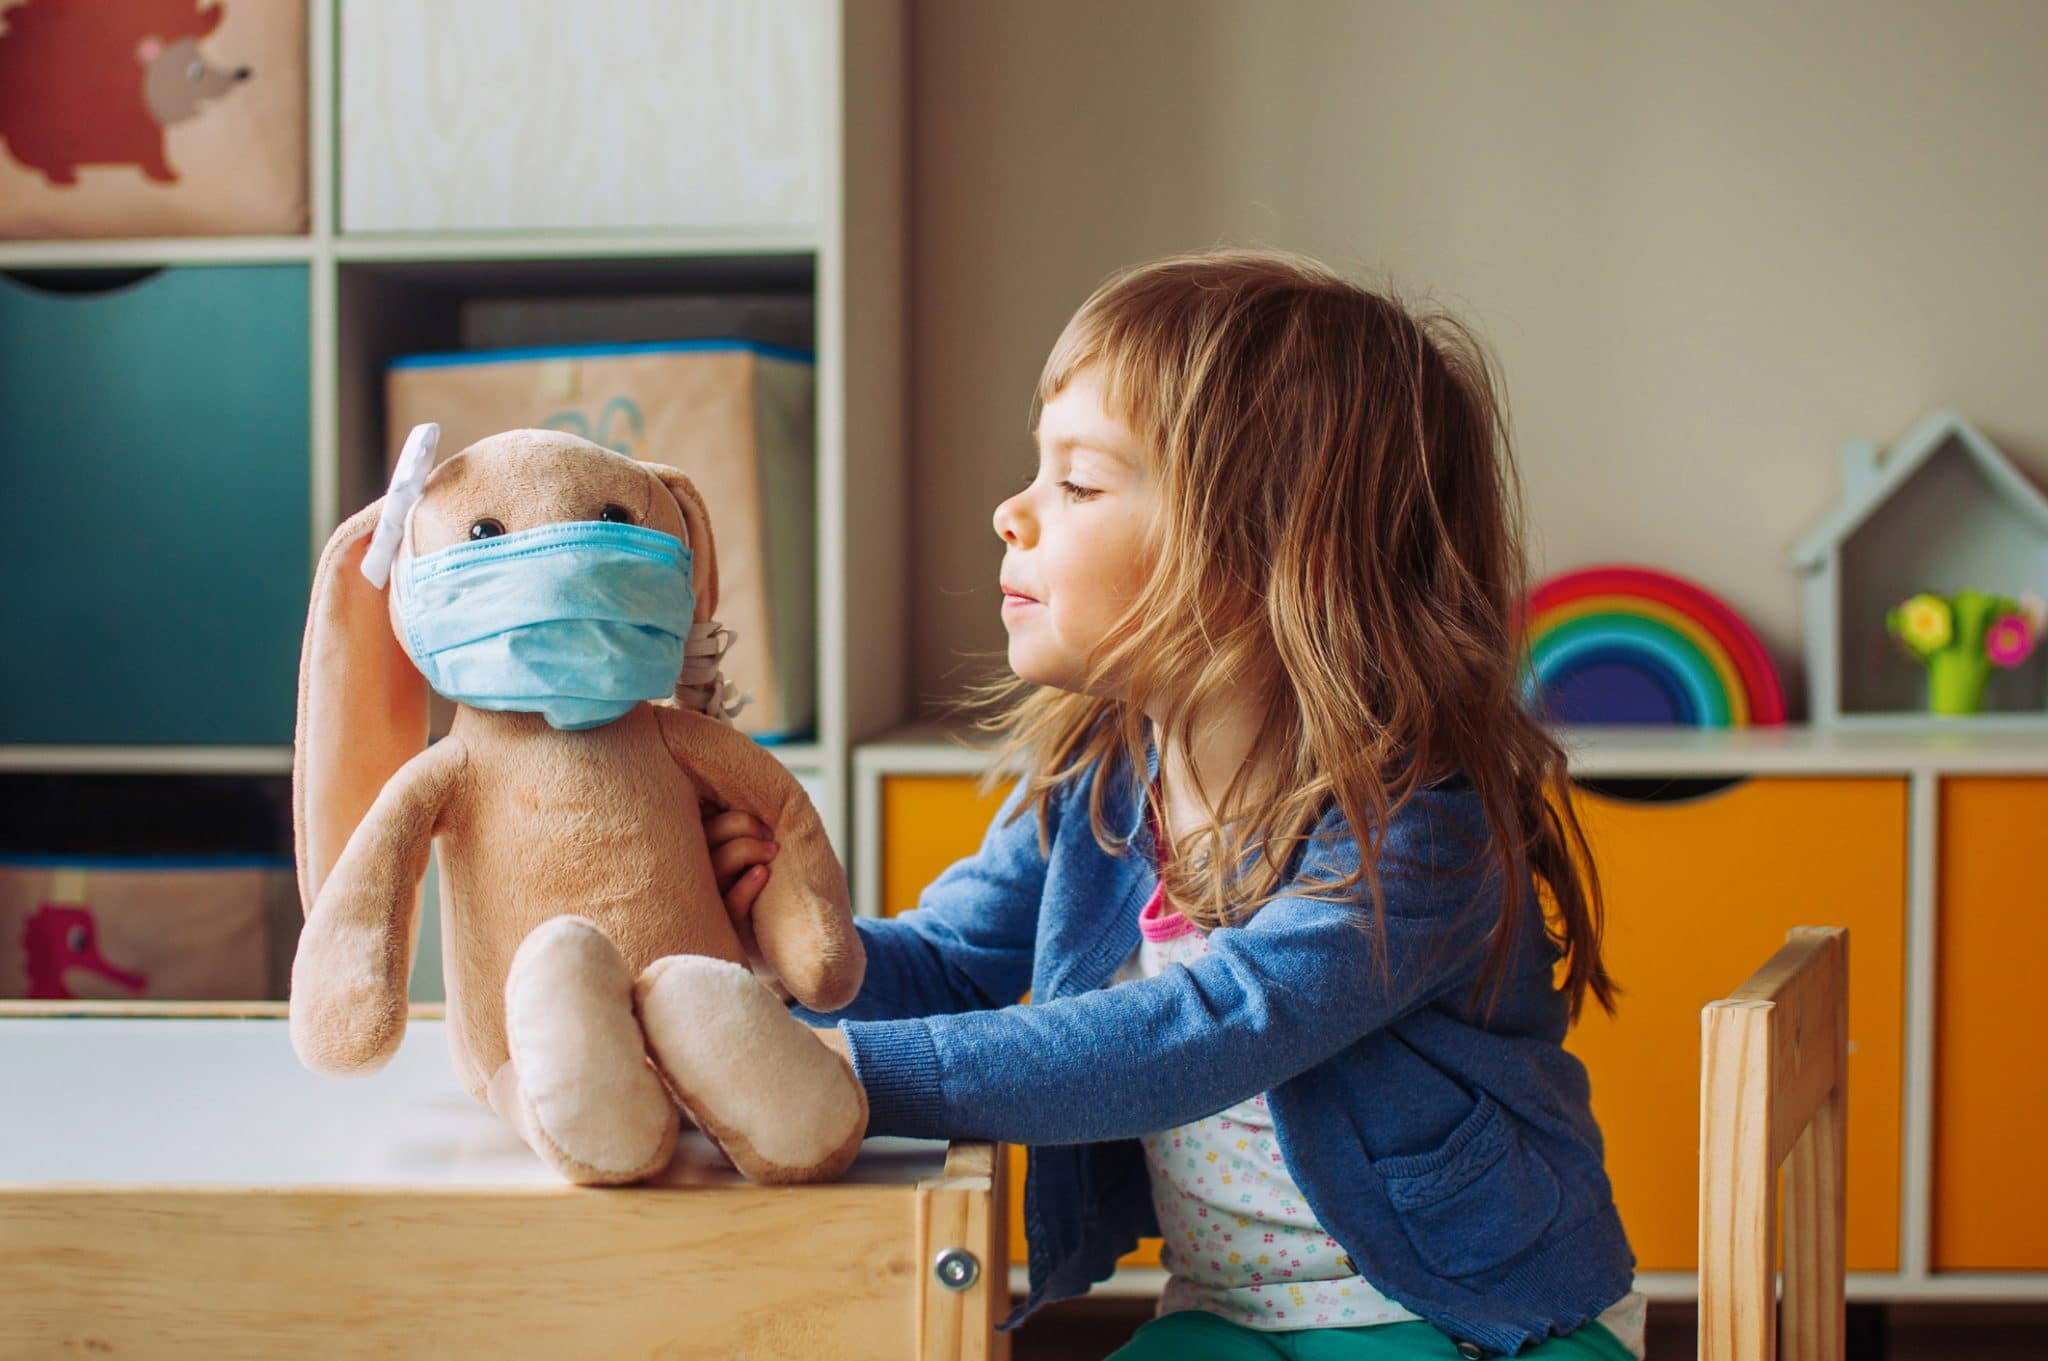 Little girl playing with rabbit soft toy in the medicine mask sitting at the table in the kids room.